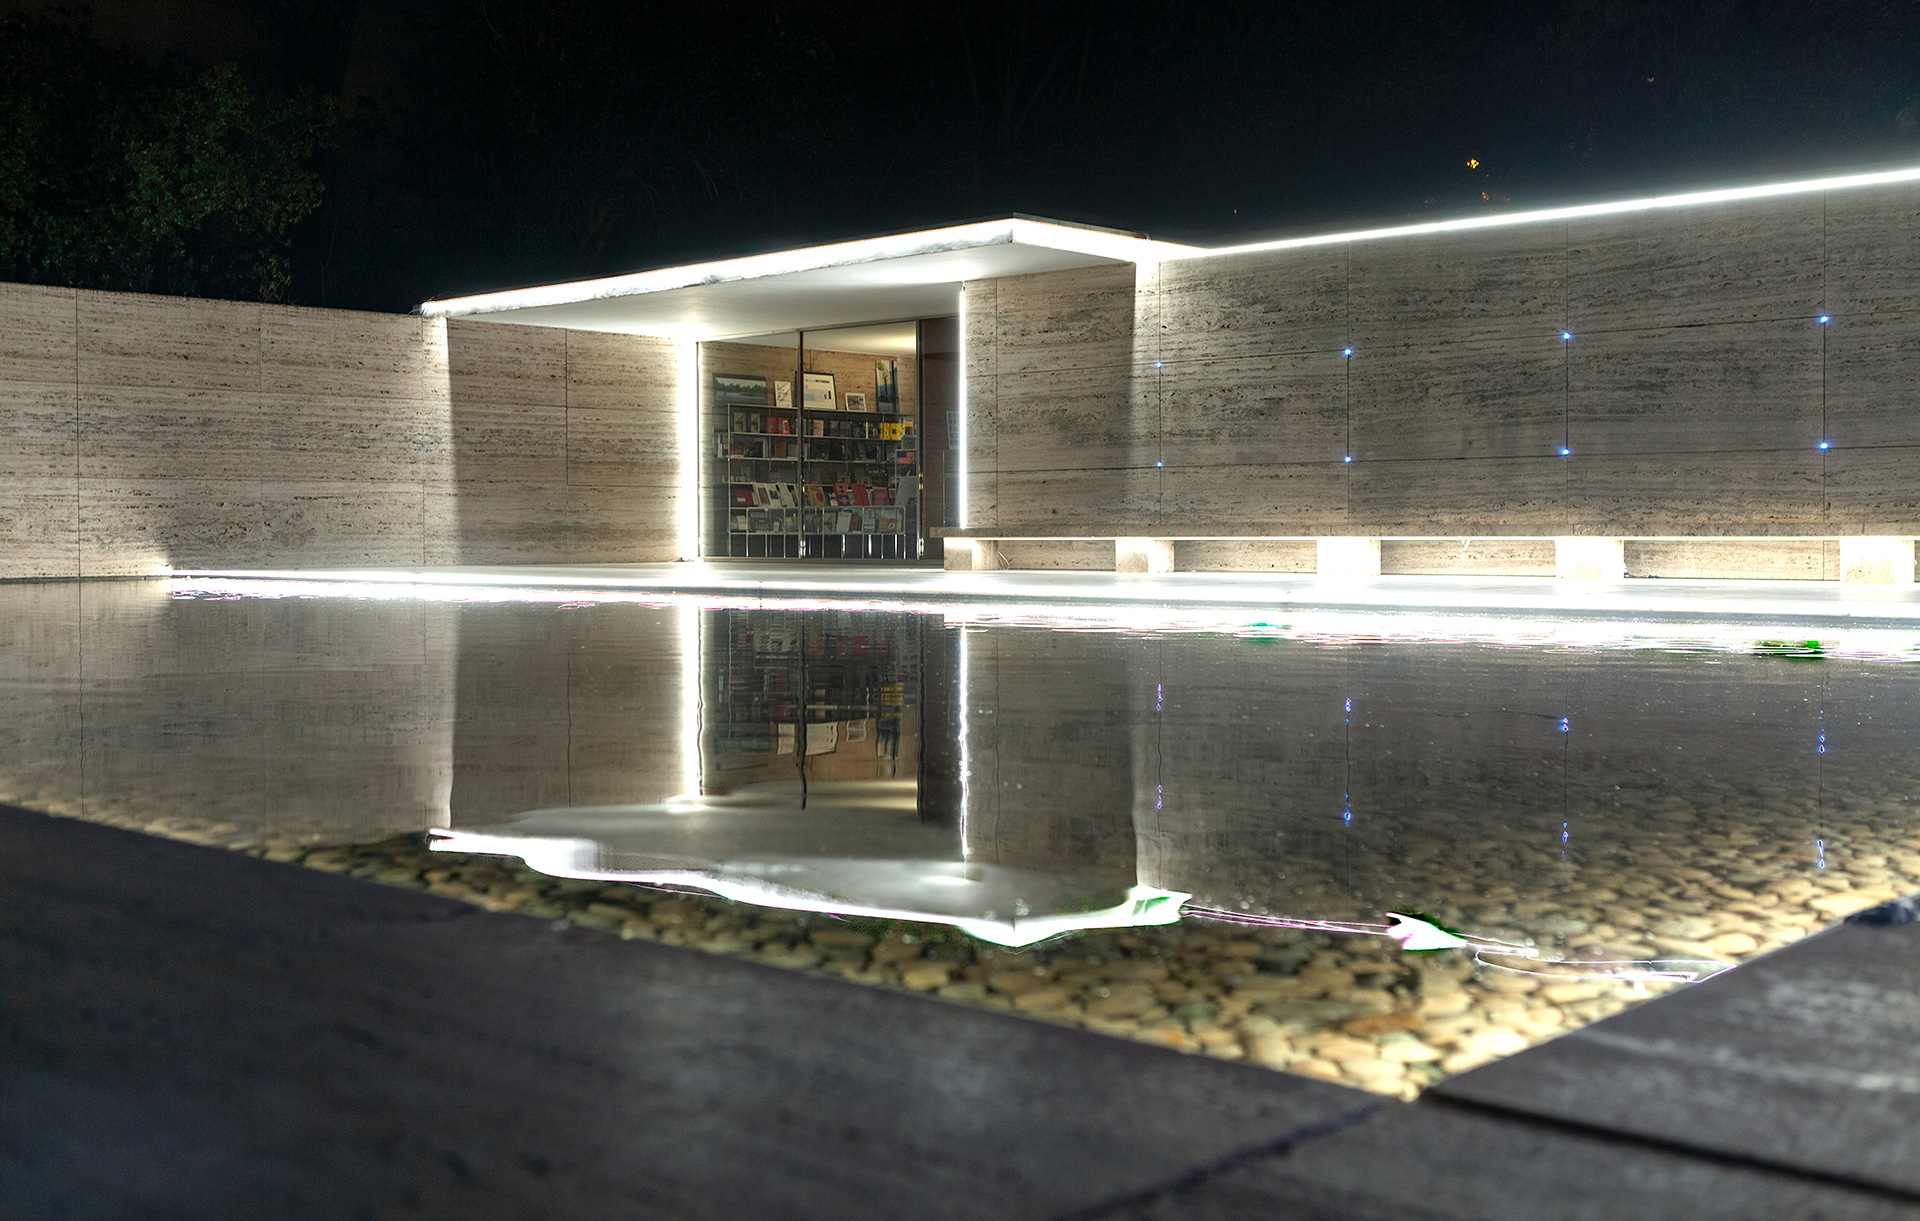 Illuminated travertine pavers, walls and the reflecting pond  | Big Bang Building Light! | Mario Pasqualotto | STIRworld